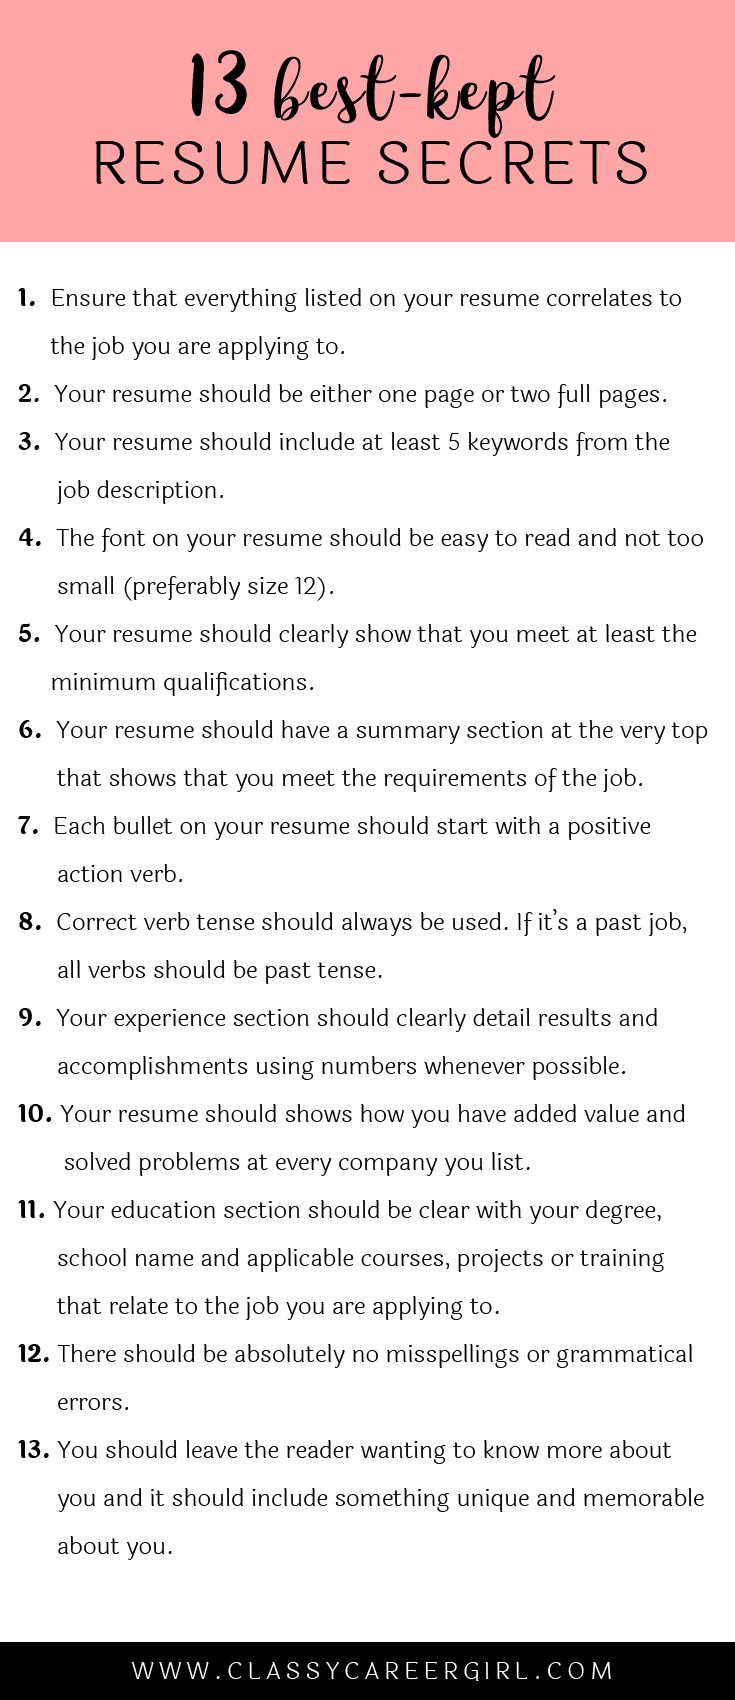 Opposenewapstandardsus  Prepossessing  Ideas About Resume On Pinterest  Cv Format Resume Cv And  With Interesting Some Hiring Managers Will Toss Your Resume Out If You Dont Know These  With Endearing How To Make A Resume Stand Out Also Open Office Resume Templates In Addition Director Resume And Help Making A Resume As Well As Examples Of Skills On A Resume Additionally Civil Engineer Resume From Pinterestcom With Opposenewapstandardsus  Interesting  Ideas About Resume On Pinterest  Cv Format Resume Cv And  With Endearing Some Hiring Managers Will Toss Your Resume Out If You Dont Know These  And Prepossessing How To Make A Resume Stand Out Also Open Office Resume Templates In Addition Director Resume From Pinterestcom